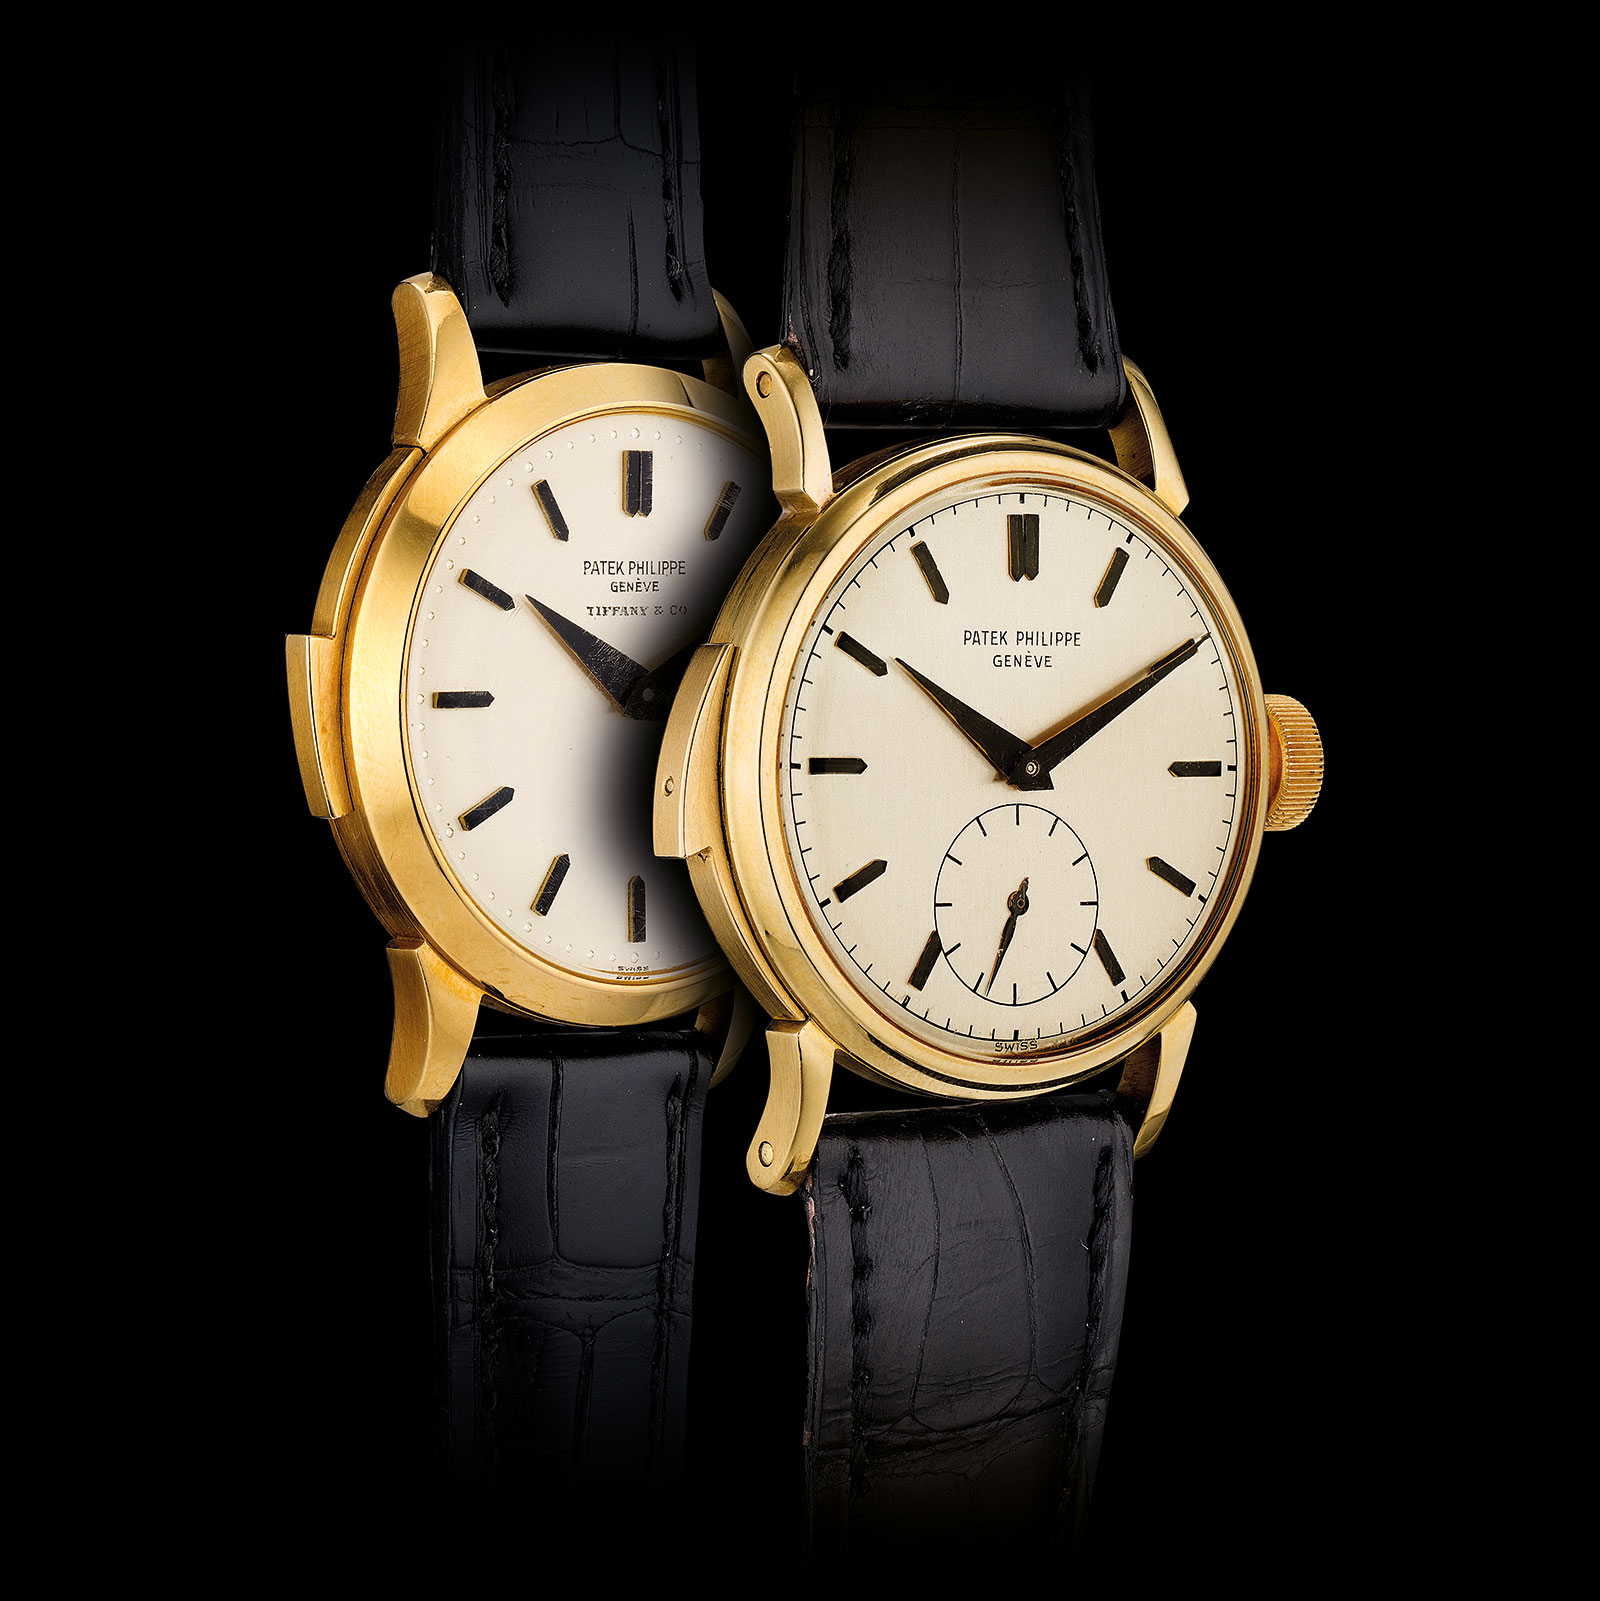 Patek Philippe 2419 and 2524 minute repeaters